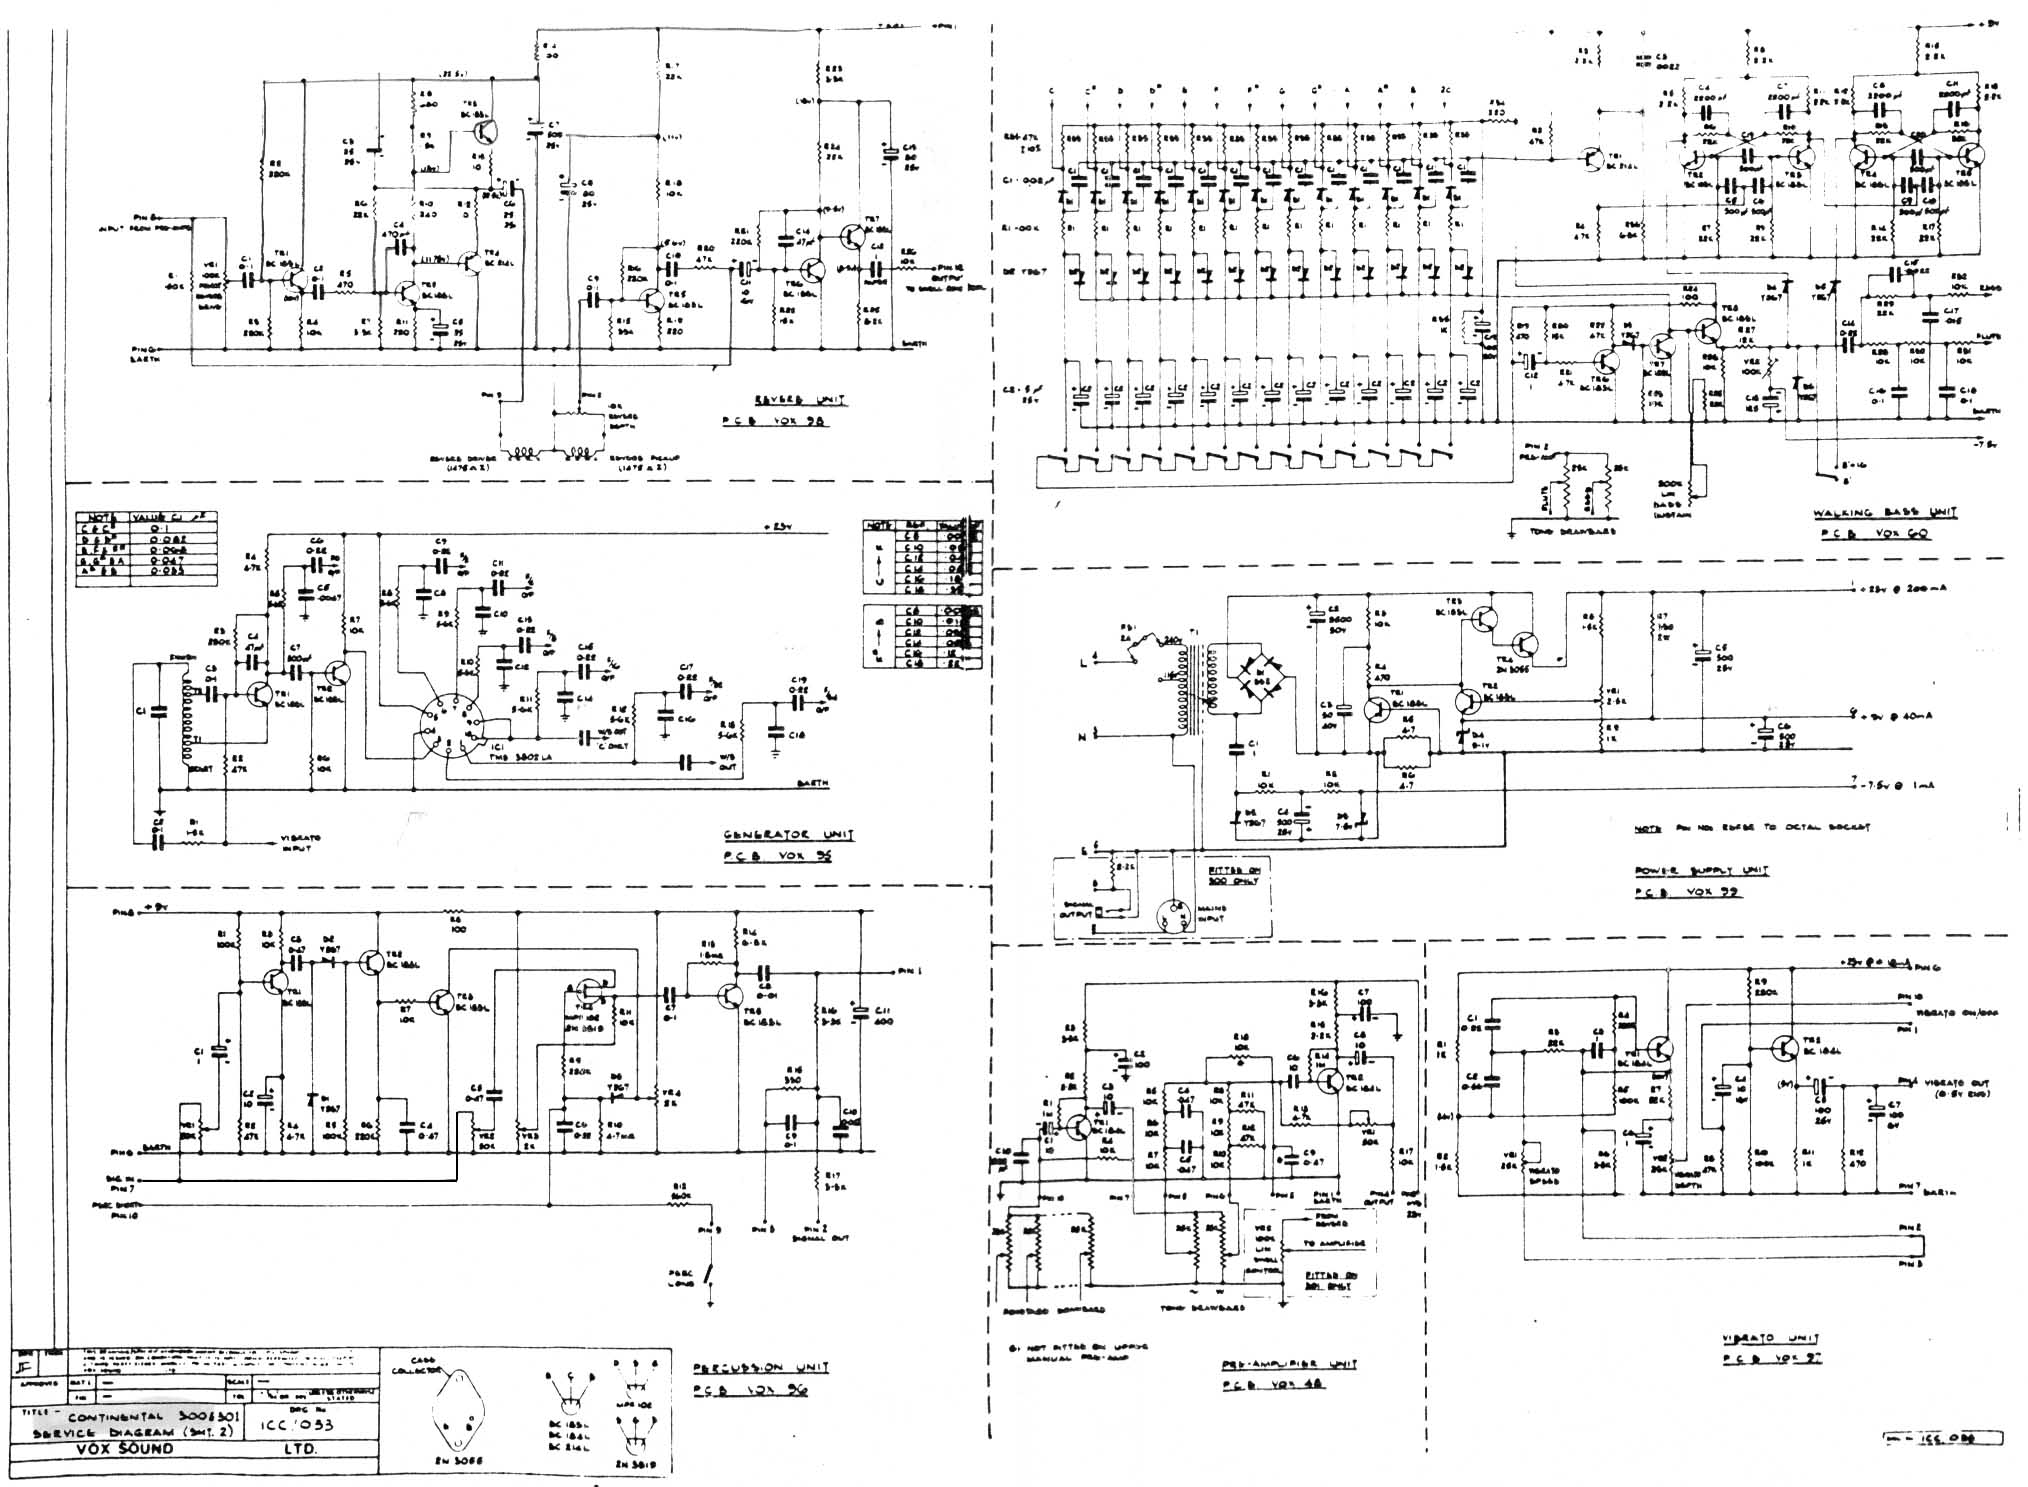 Vox Continental Schematic Great Installation Of Wiring Diagram Circuit Vintage Diagrams Rh Korguk Com Cry Baby Mv50 Inside